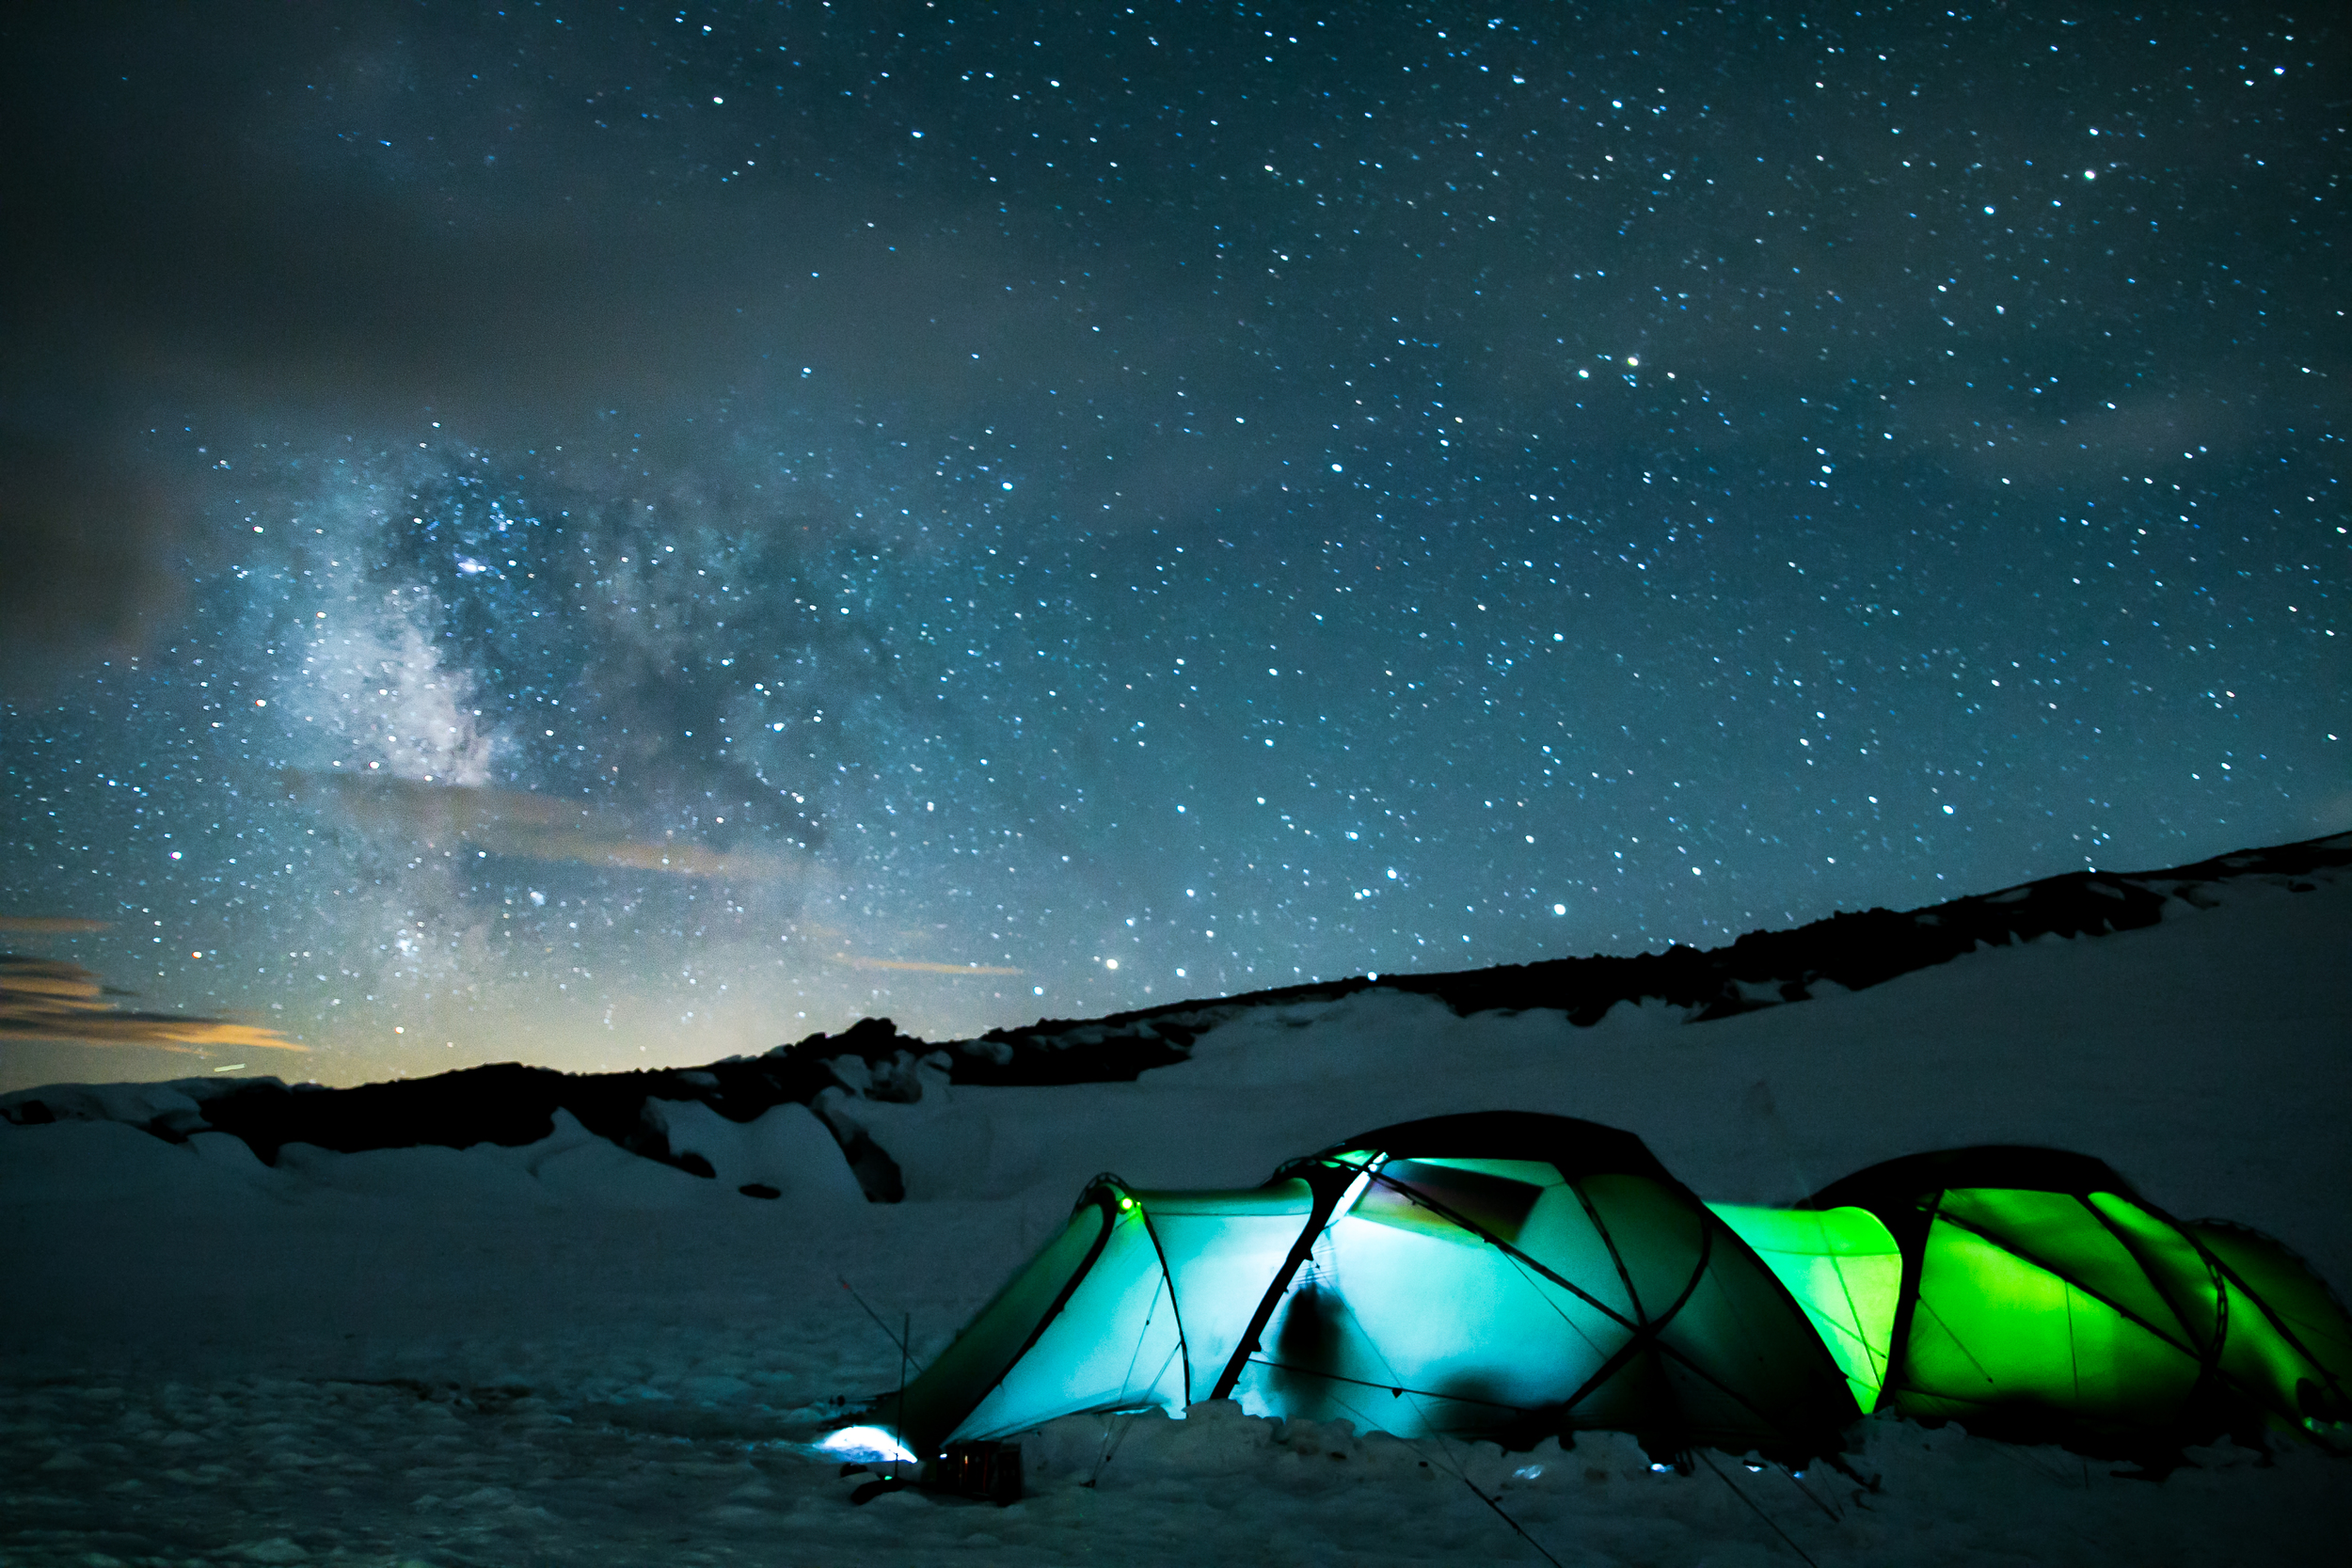 Our camp at 14,200' inside Mt Rainier's active volcanic crater